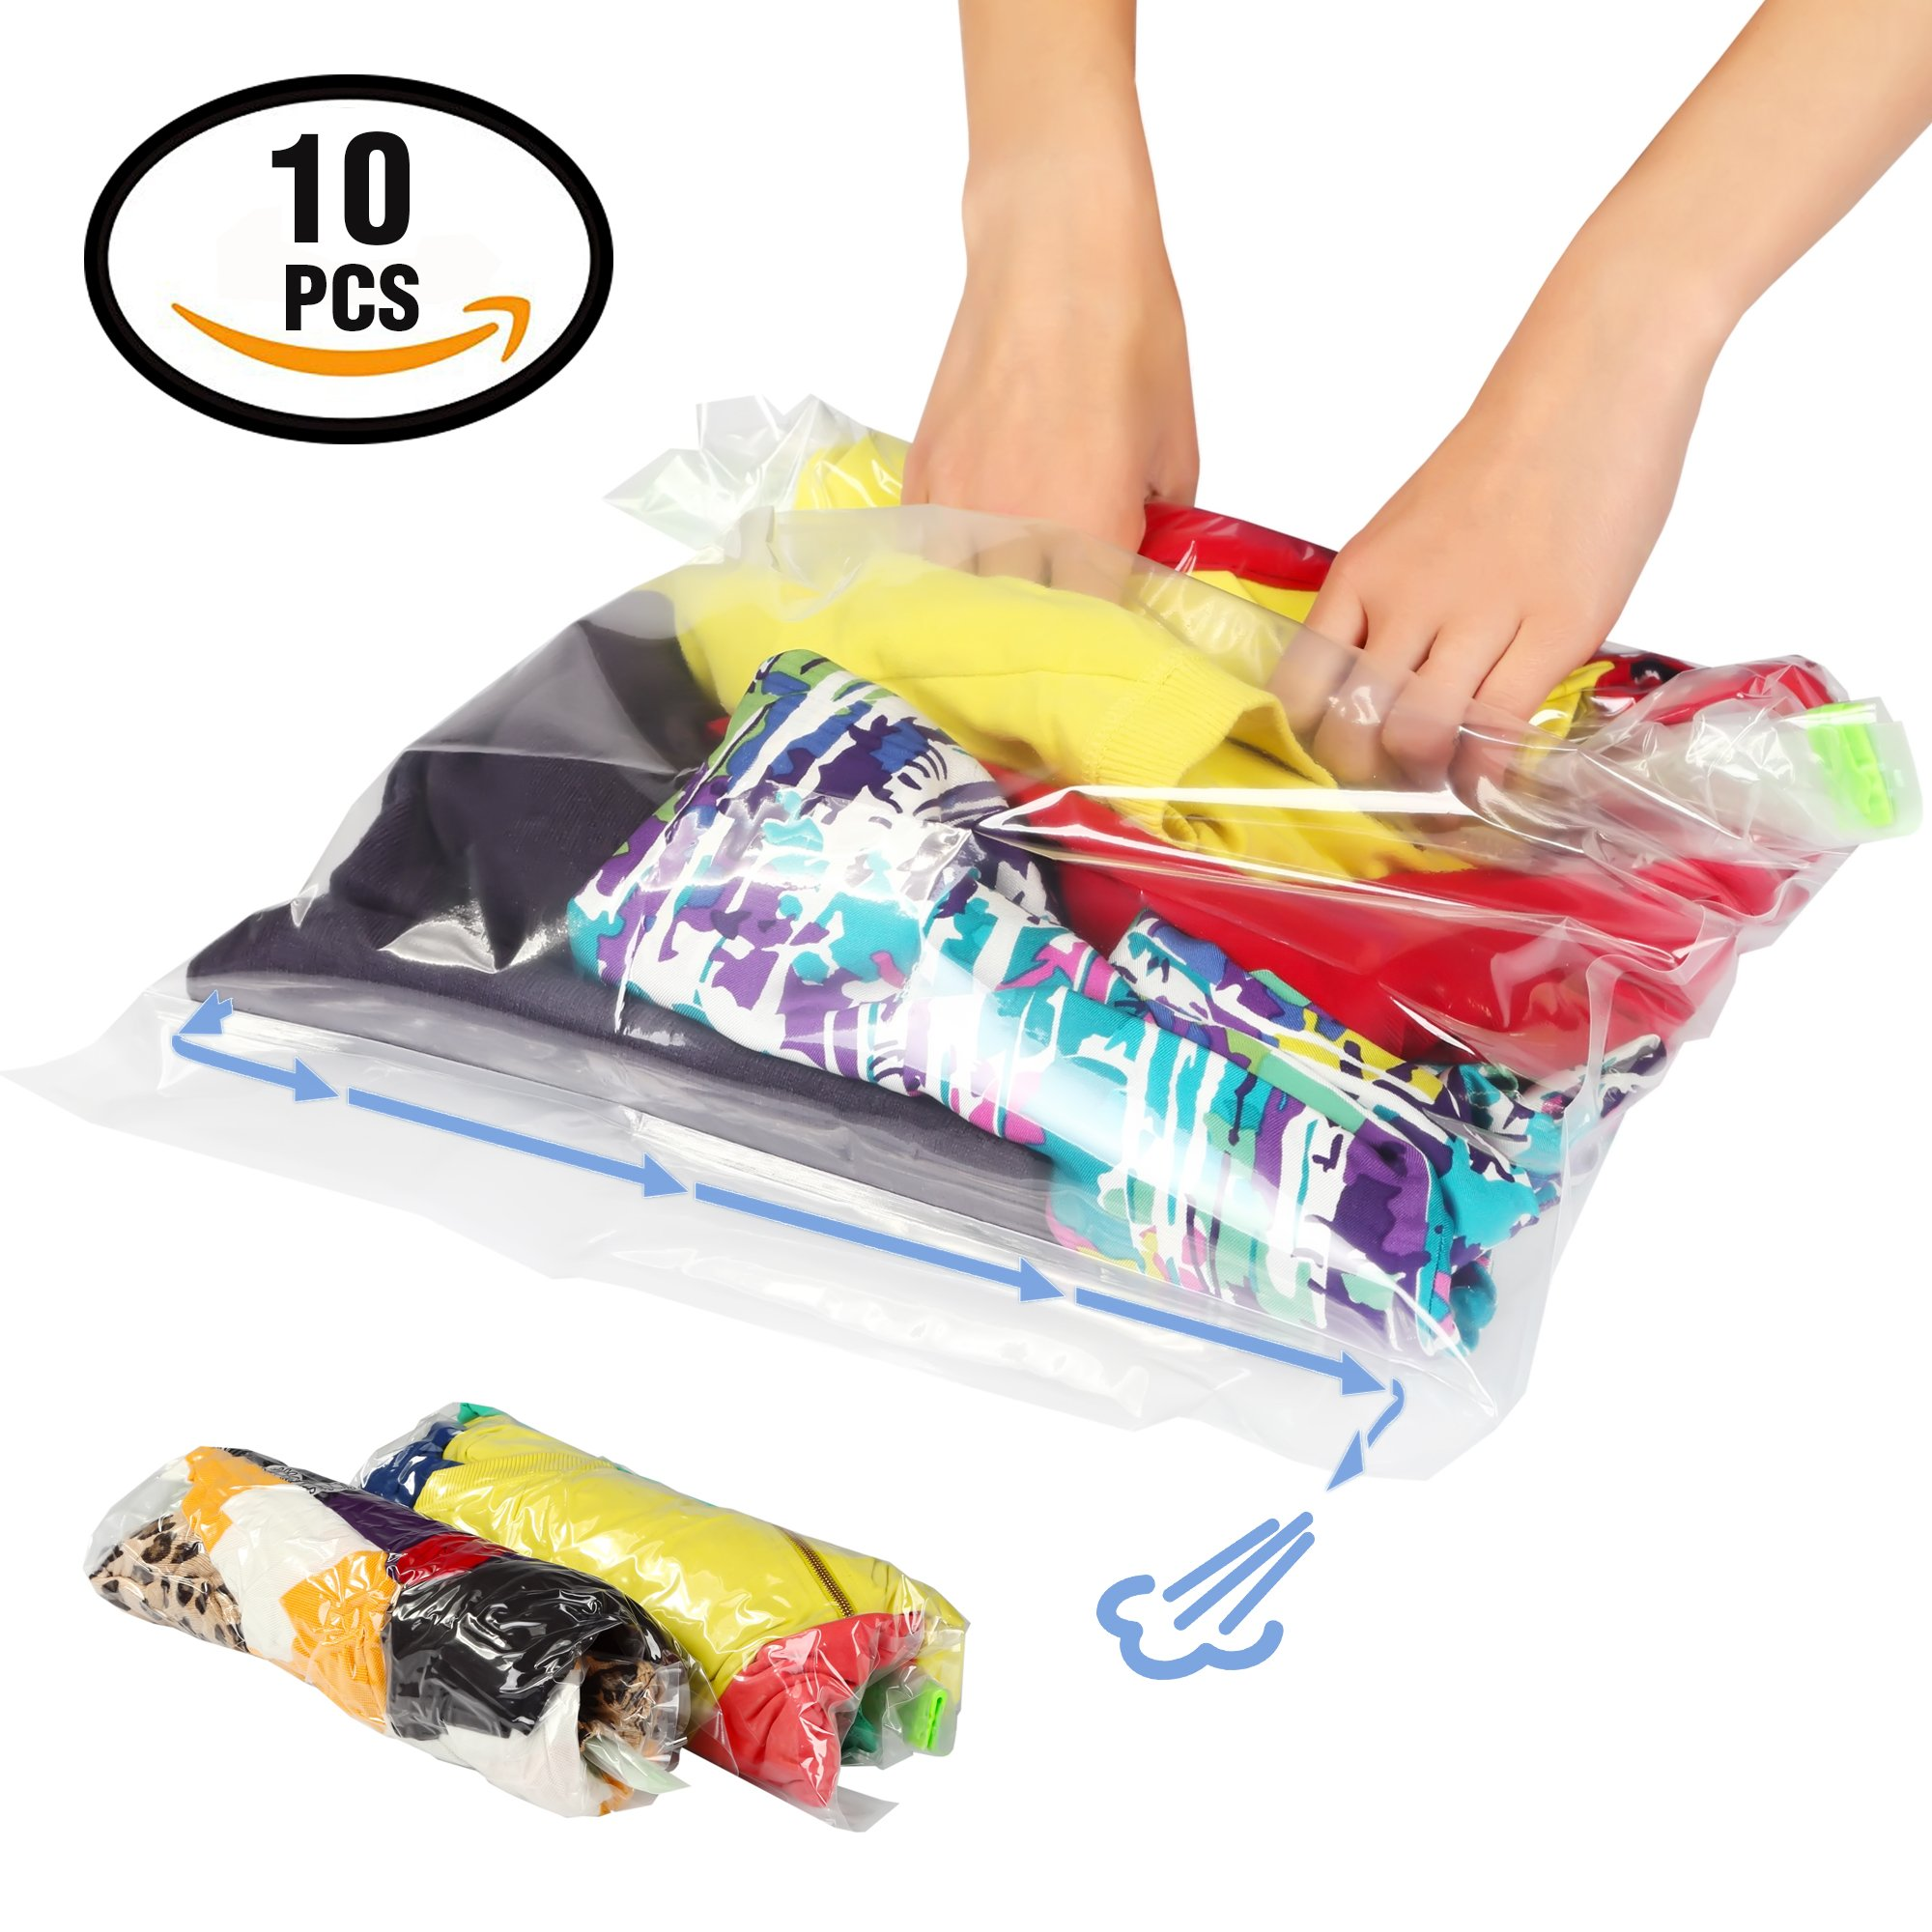 Cheap Space Bags Large Find Deals On Line At Vacum Travel Bag Get Quotations Lekors Saver 5 Medium And Roll Up Storage